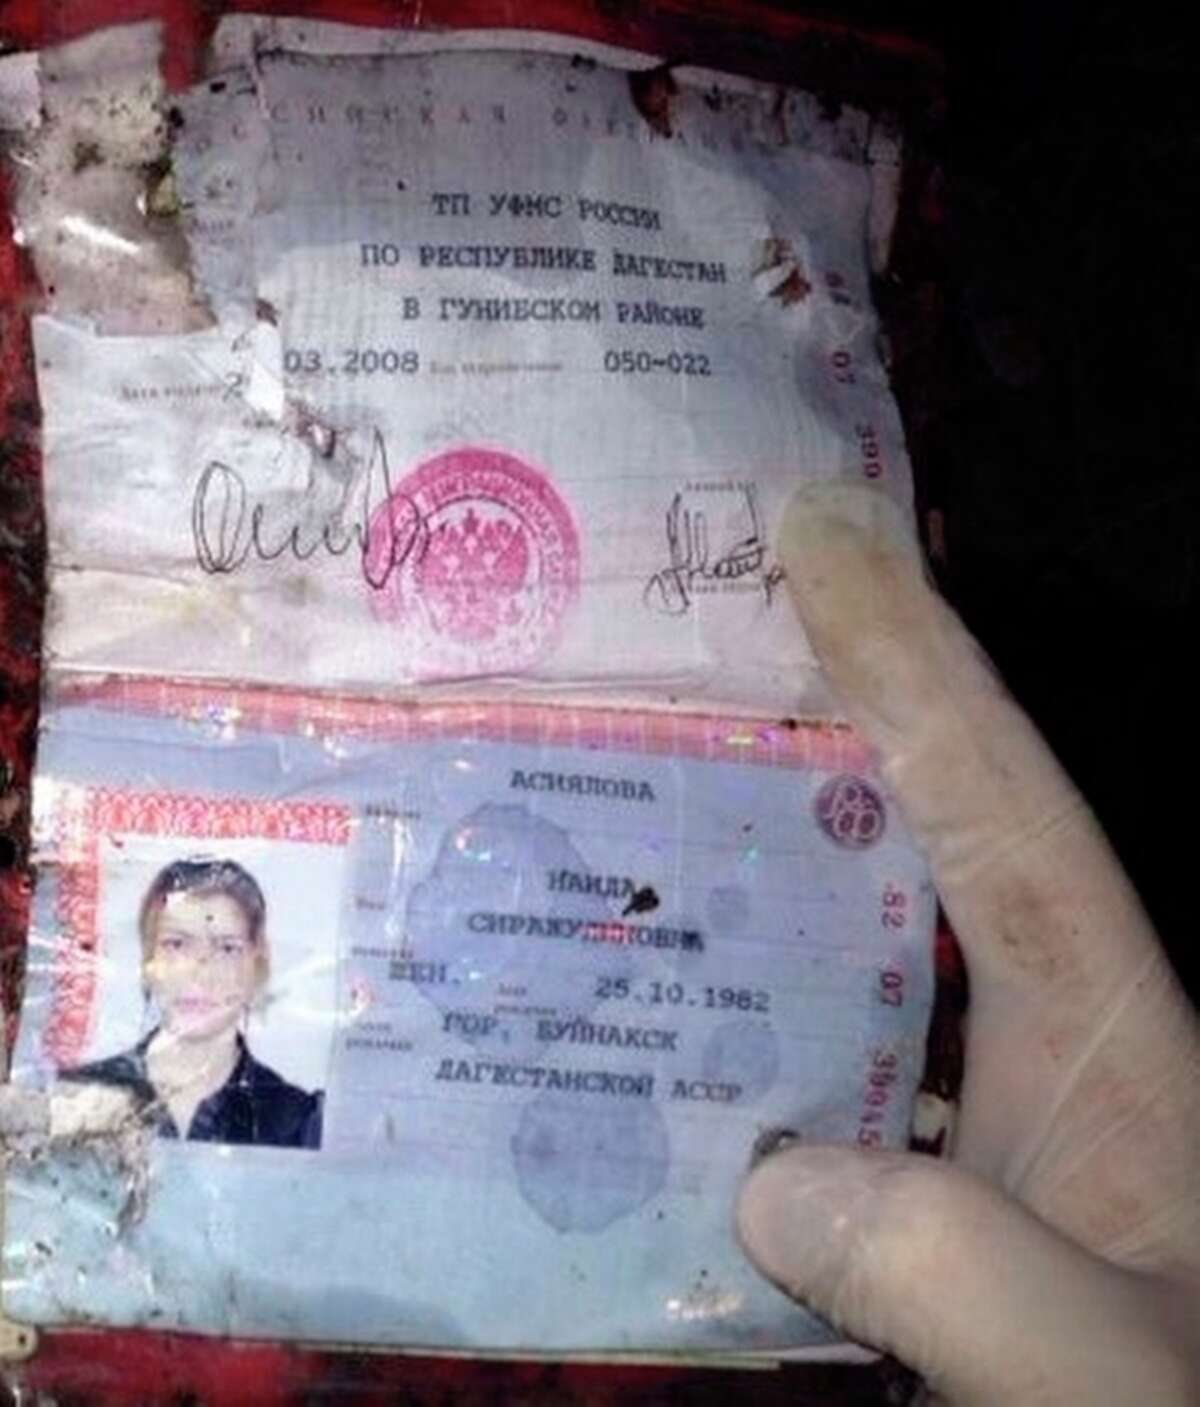 The photo provided by Russia's Investigative Committee on Tuesday, Oct. 22, 2013, shows the passport of Naida Asiyalova, a suspected suicide bomber. The Investigative Committee, Russia's main investigative agency, said that Asiyalova blew herself up on a bus in Russia's southern region of Volgograd on Monday, Oct. 21, killing six and wounding more than 30 others. (AP Photo)